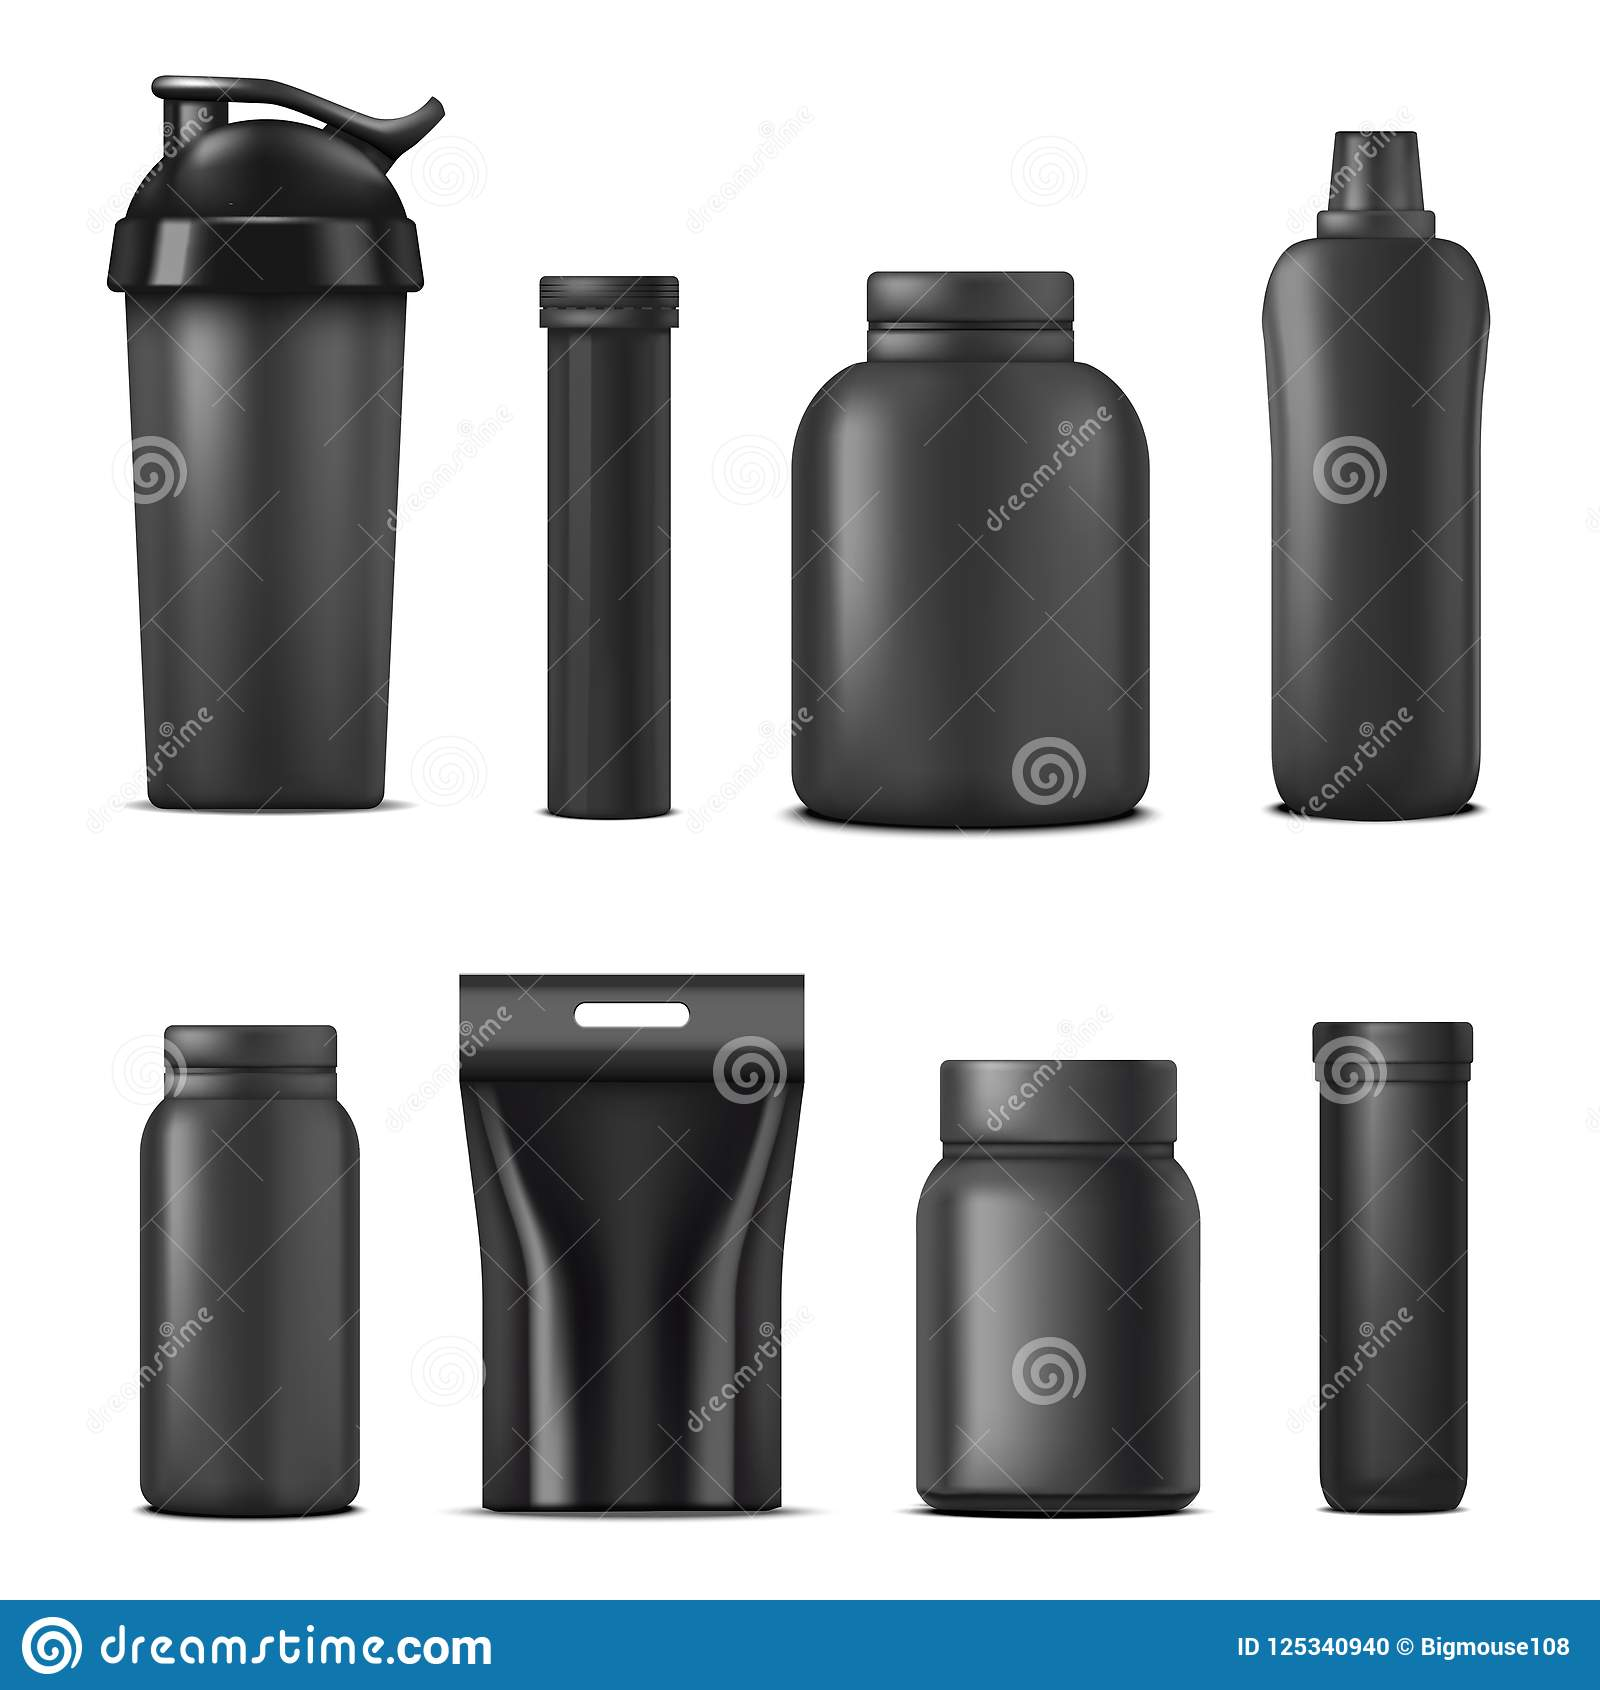 Realistic Detailed 3d Black Blank Sport Nutrition Containers Template Mockup Set. Vector